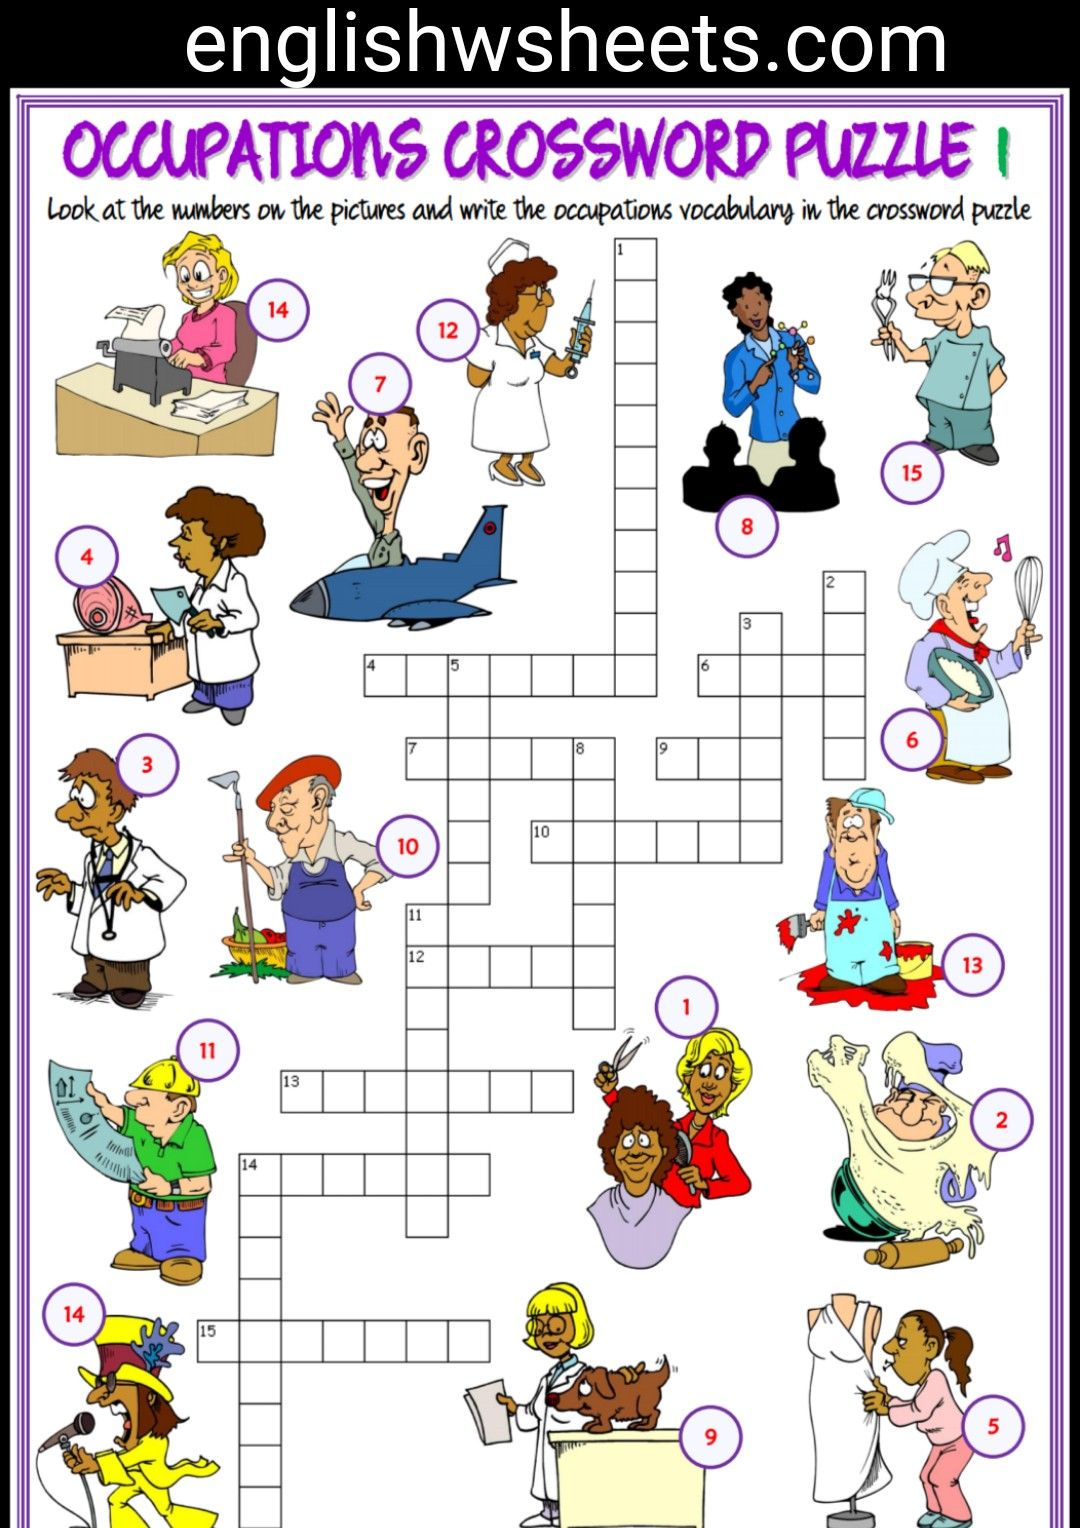 Jobs Esl Printable Crossword Puzzle Worksheets For Kids Jobs Occupations Professions Jobsesl